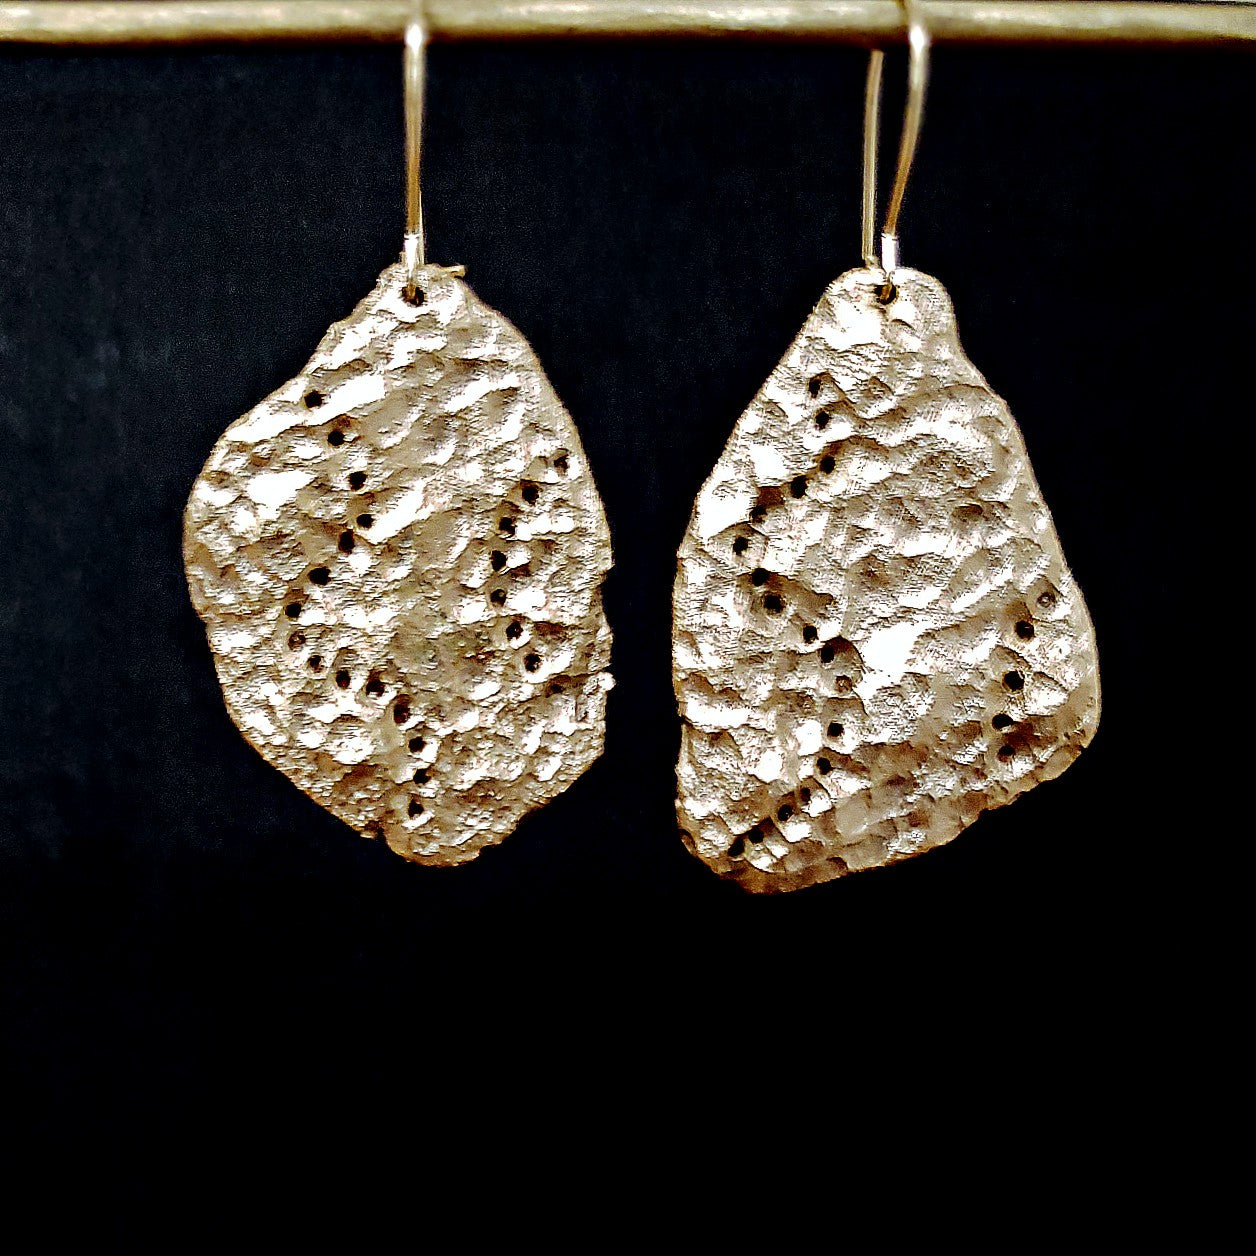 Asymmetric erosion earrings